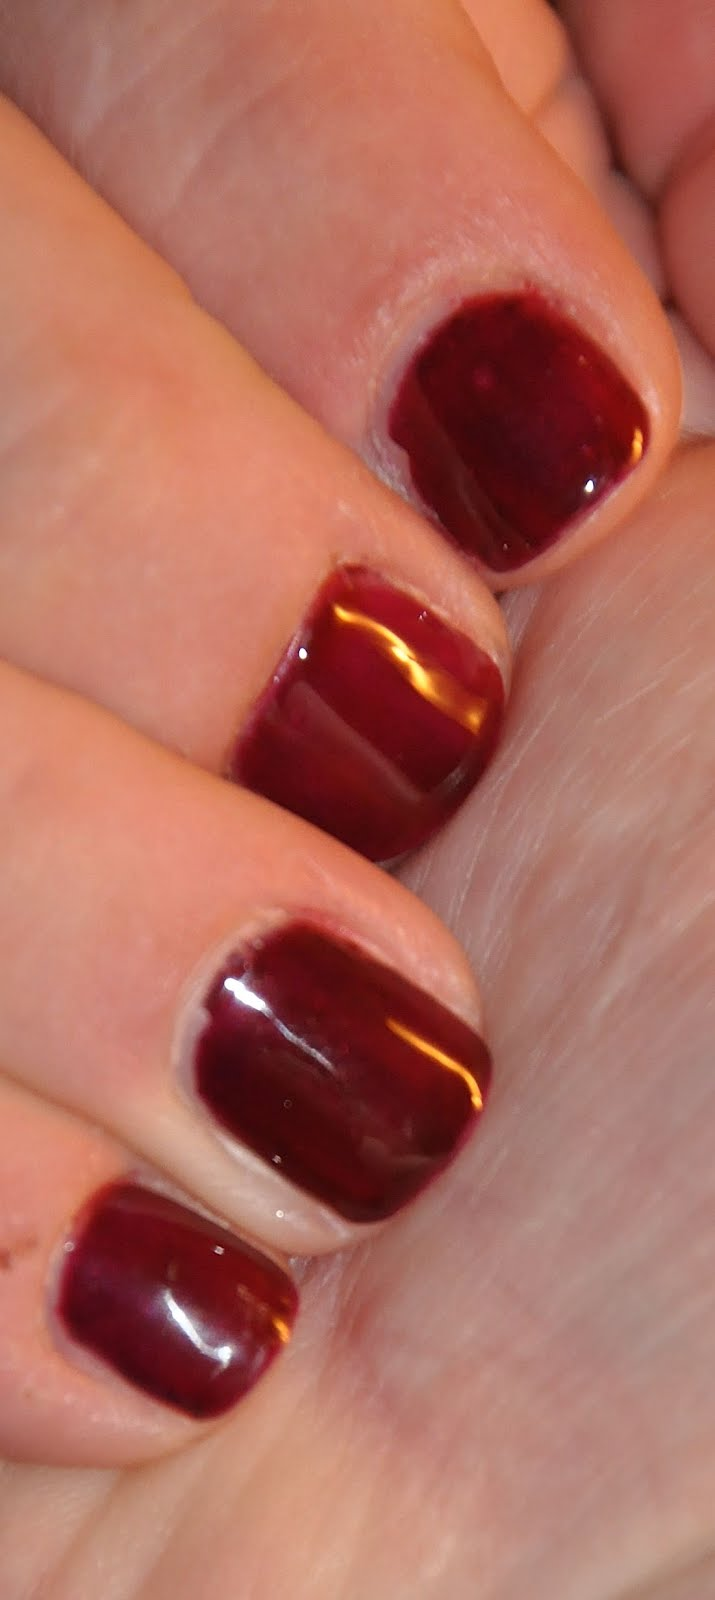 OPI Gelcolor, CND\'s Shellac, and Gelish - the pictures